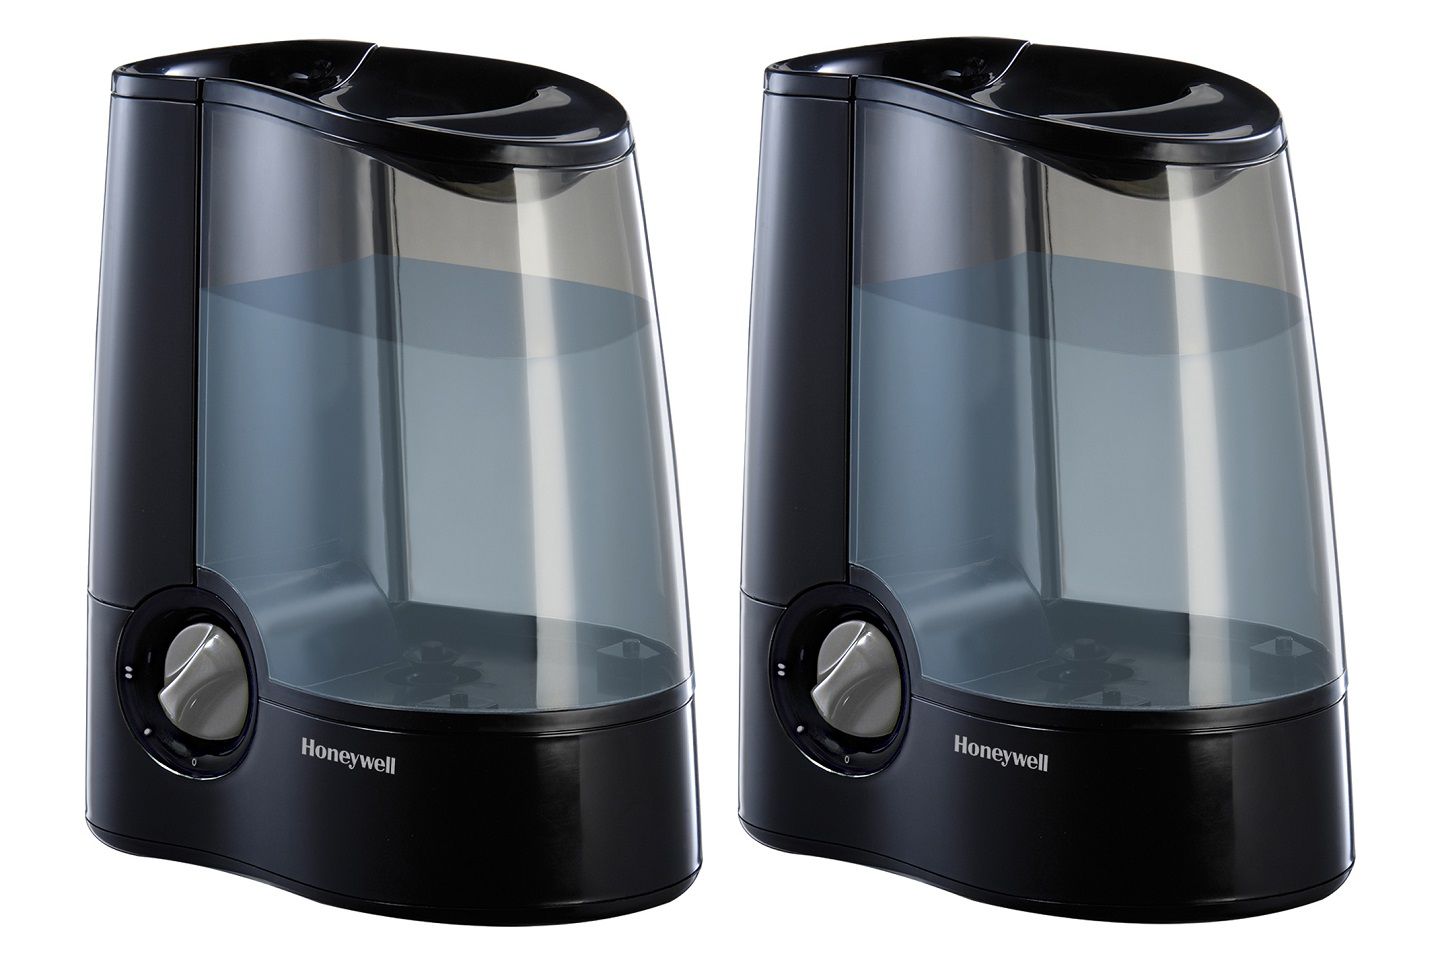 HWM705B Honeywell Filter Free Warm Moisture Humidifier (2-Pack) HONEYWELL_HWM705B_2_PACK